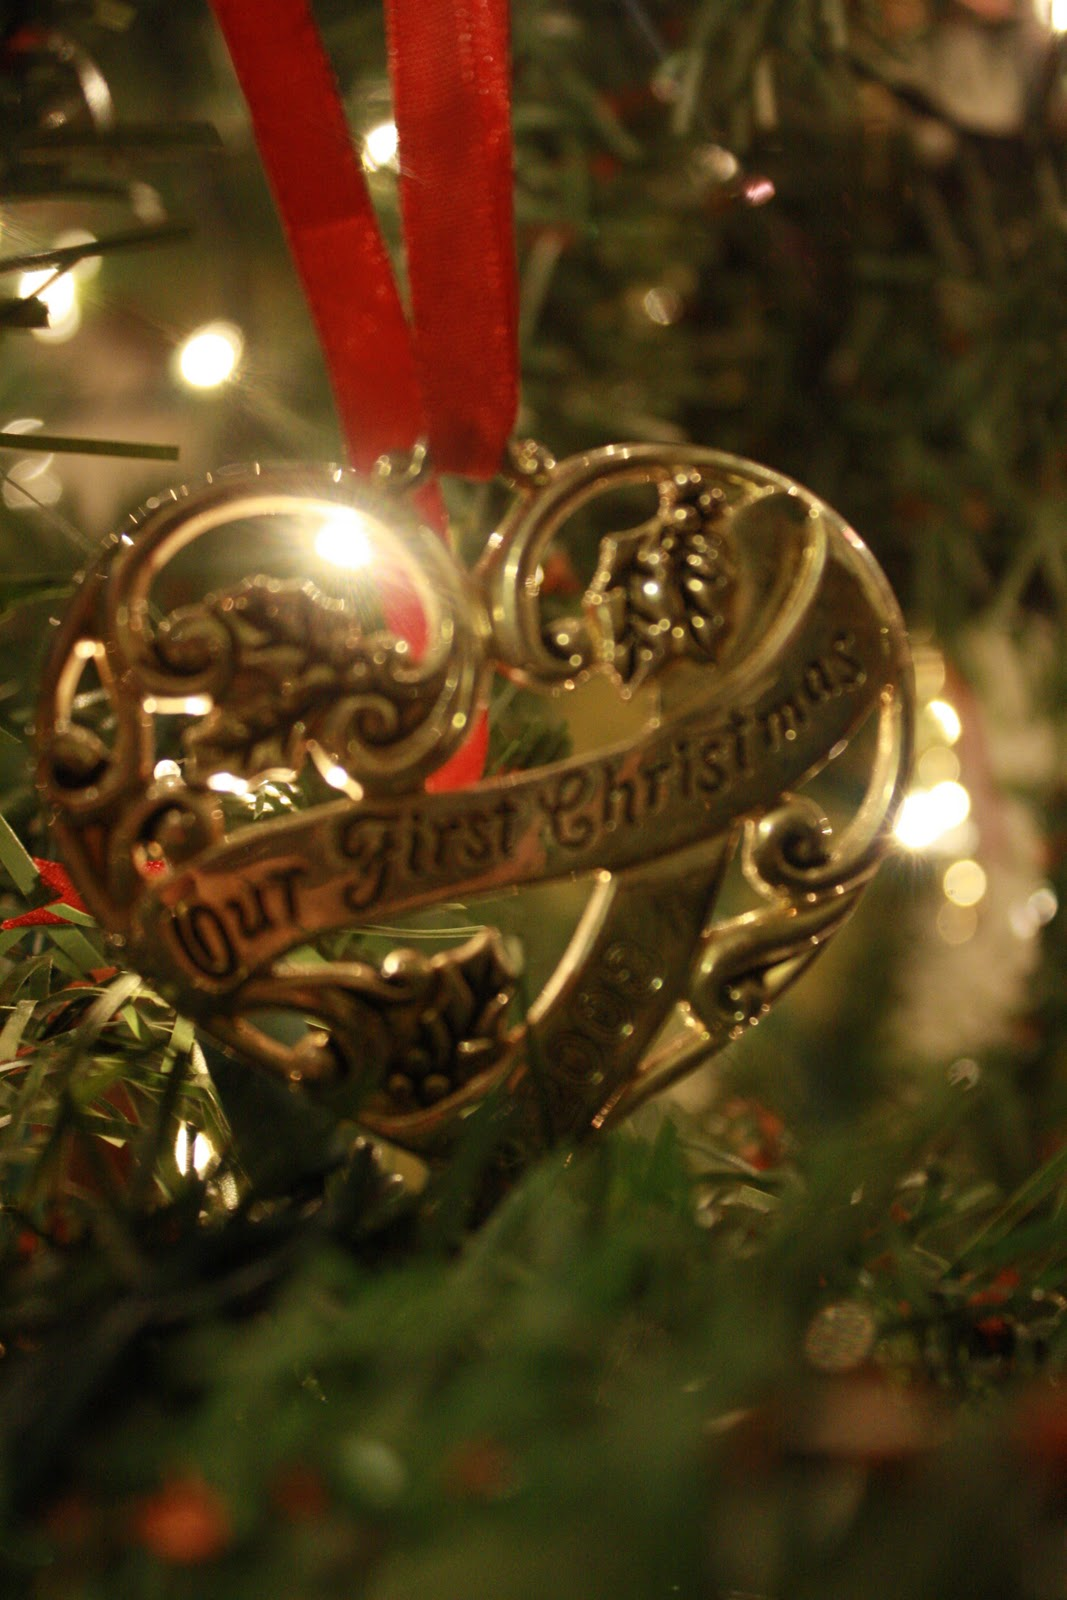 First married christmas ornament - We Were Given This Beautiful Ornament The Year We Were Married As A Christmas Gift Every Year As We Unwrap It And Hang It On Our Tree We Remember The